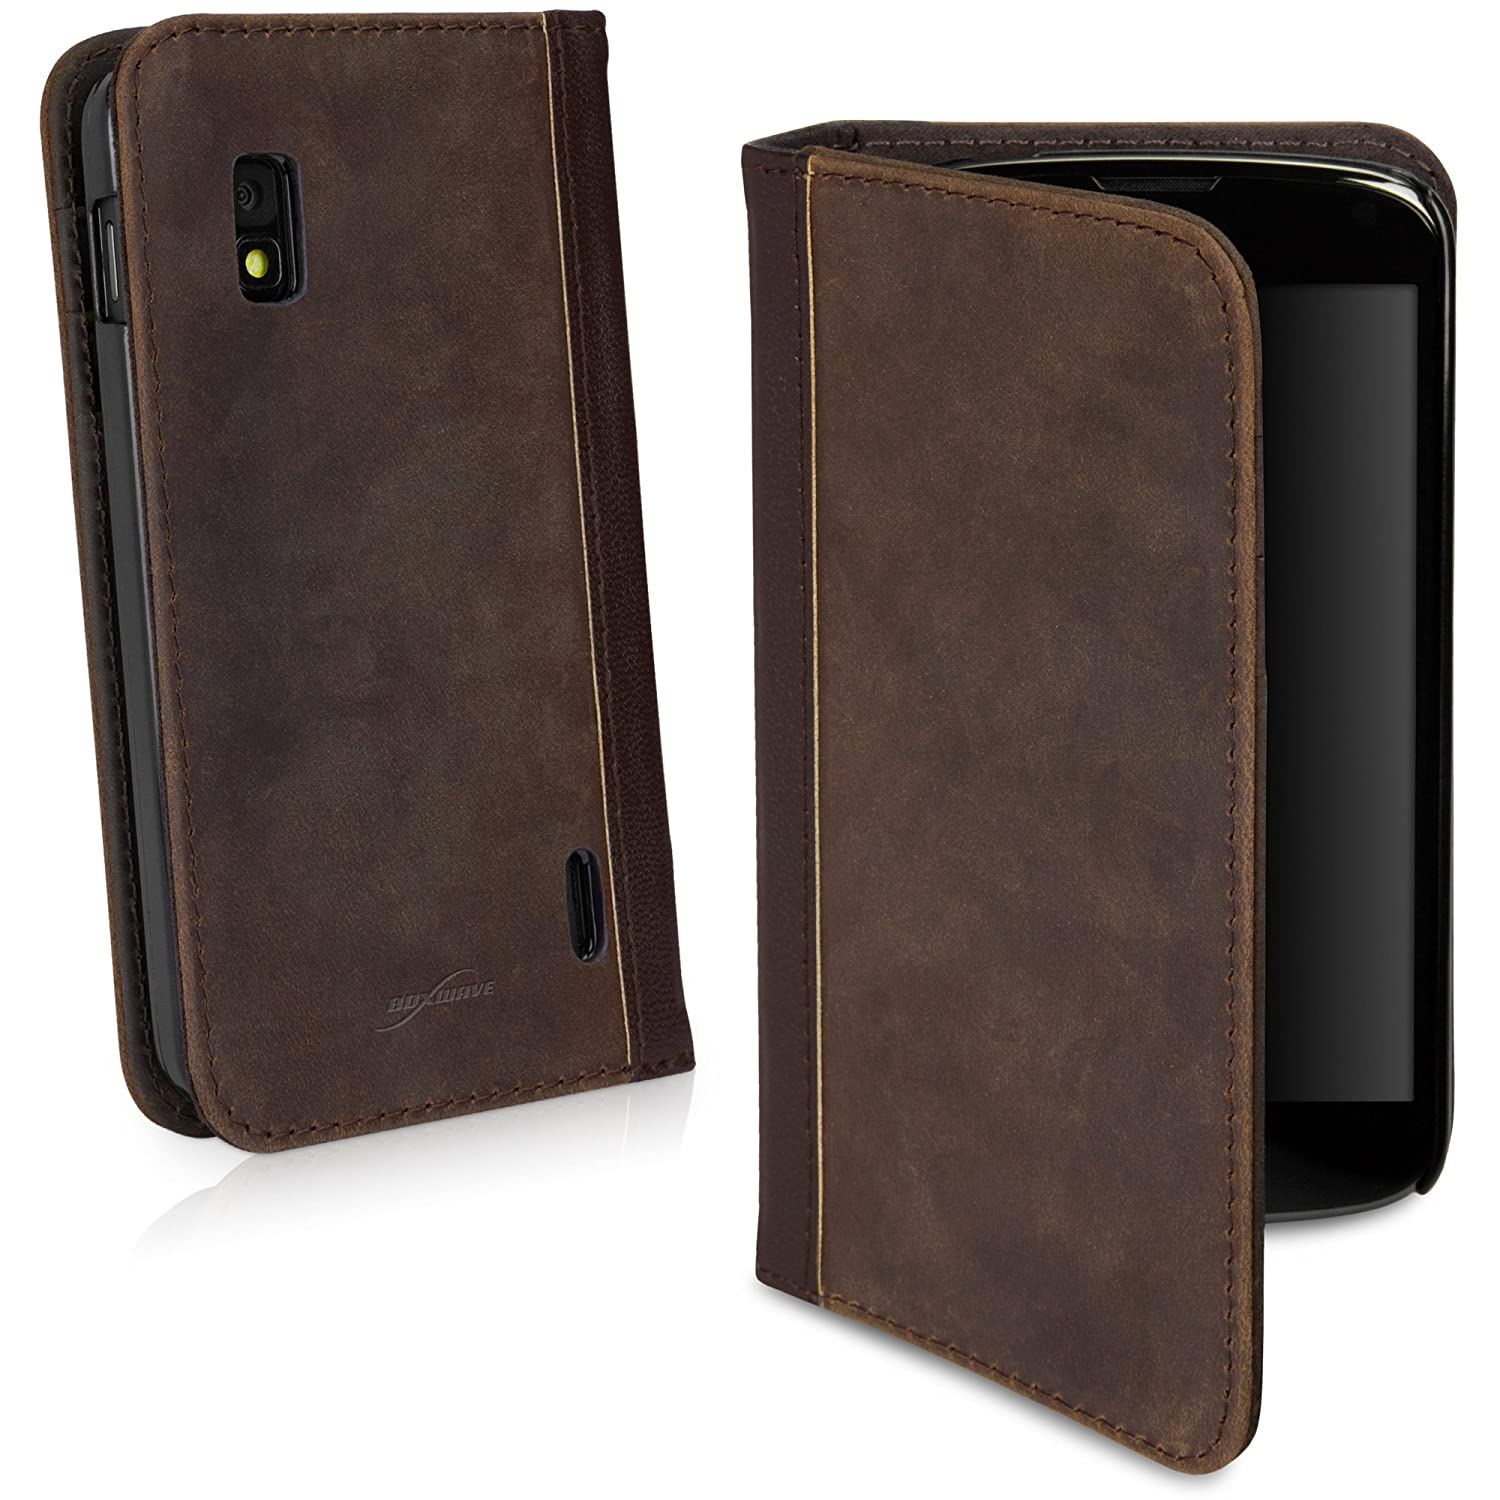 size 40 c2801 4a81f BoxWave Classic Book LG Nexus 4 Case - Vintage Book Cover Case, Leatherette  Wallet Case Design with Card Slots and Premium Interior Design for LG ...